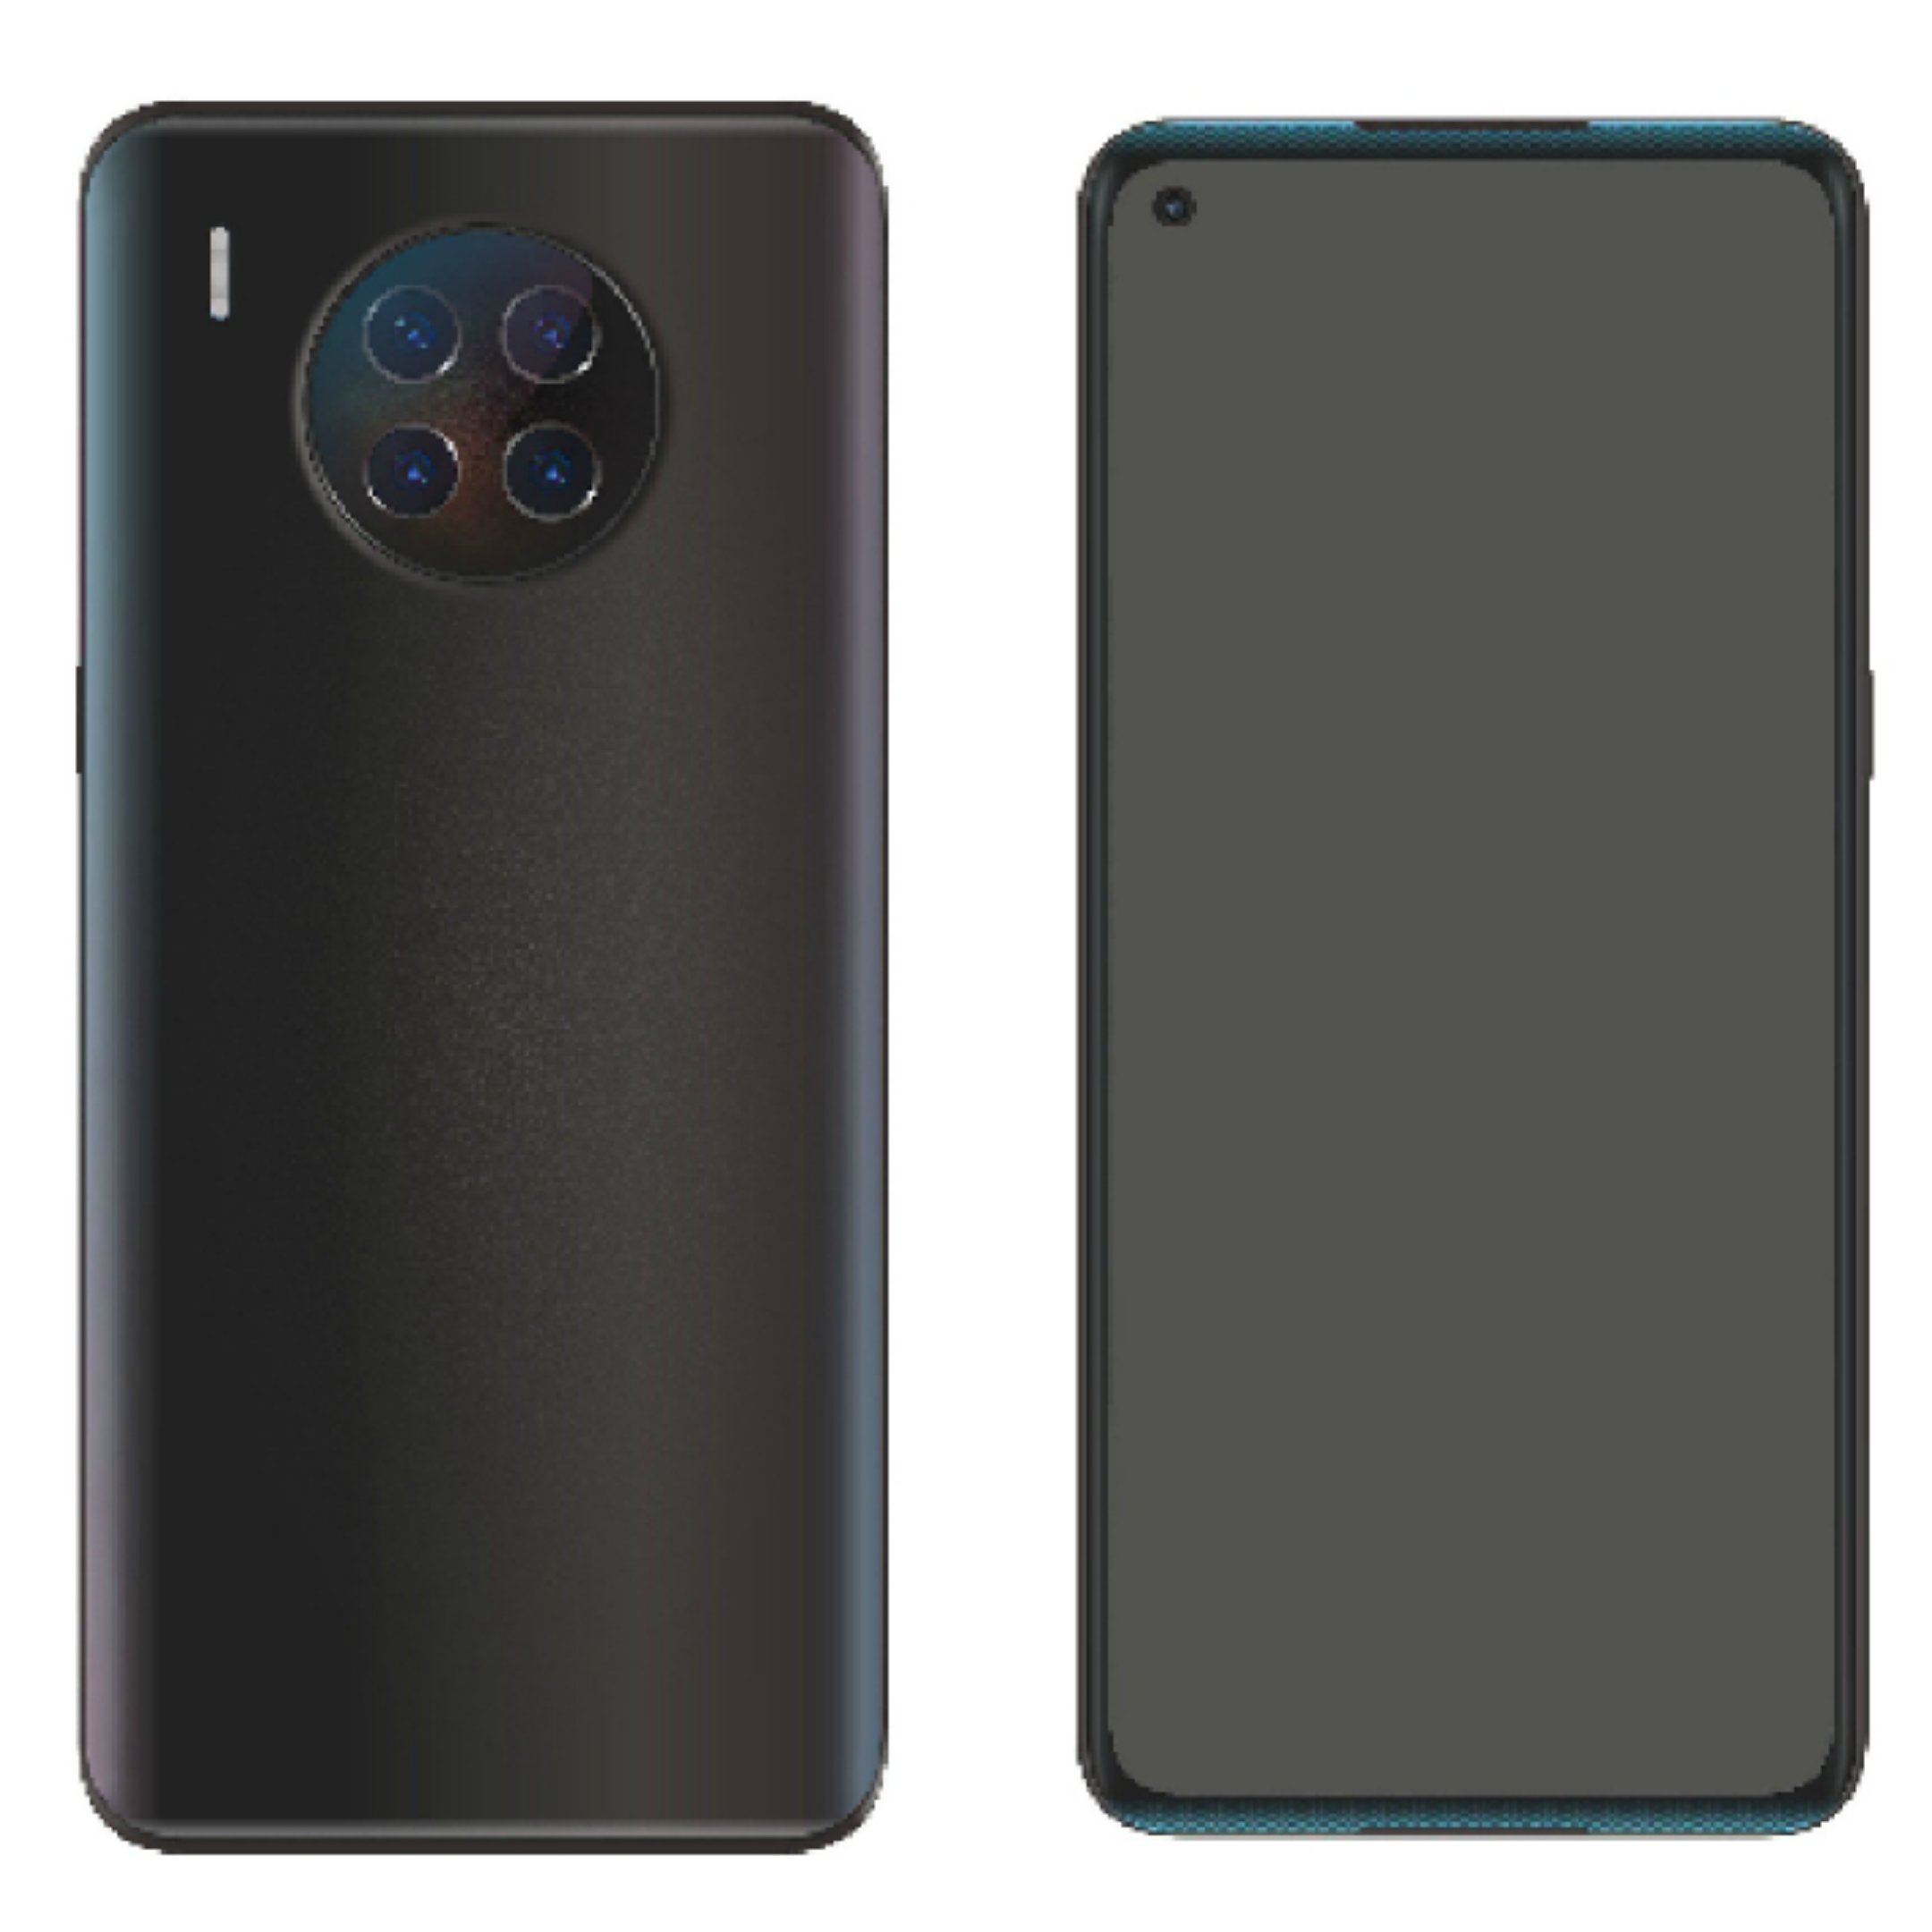 Oppo front and rear